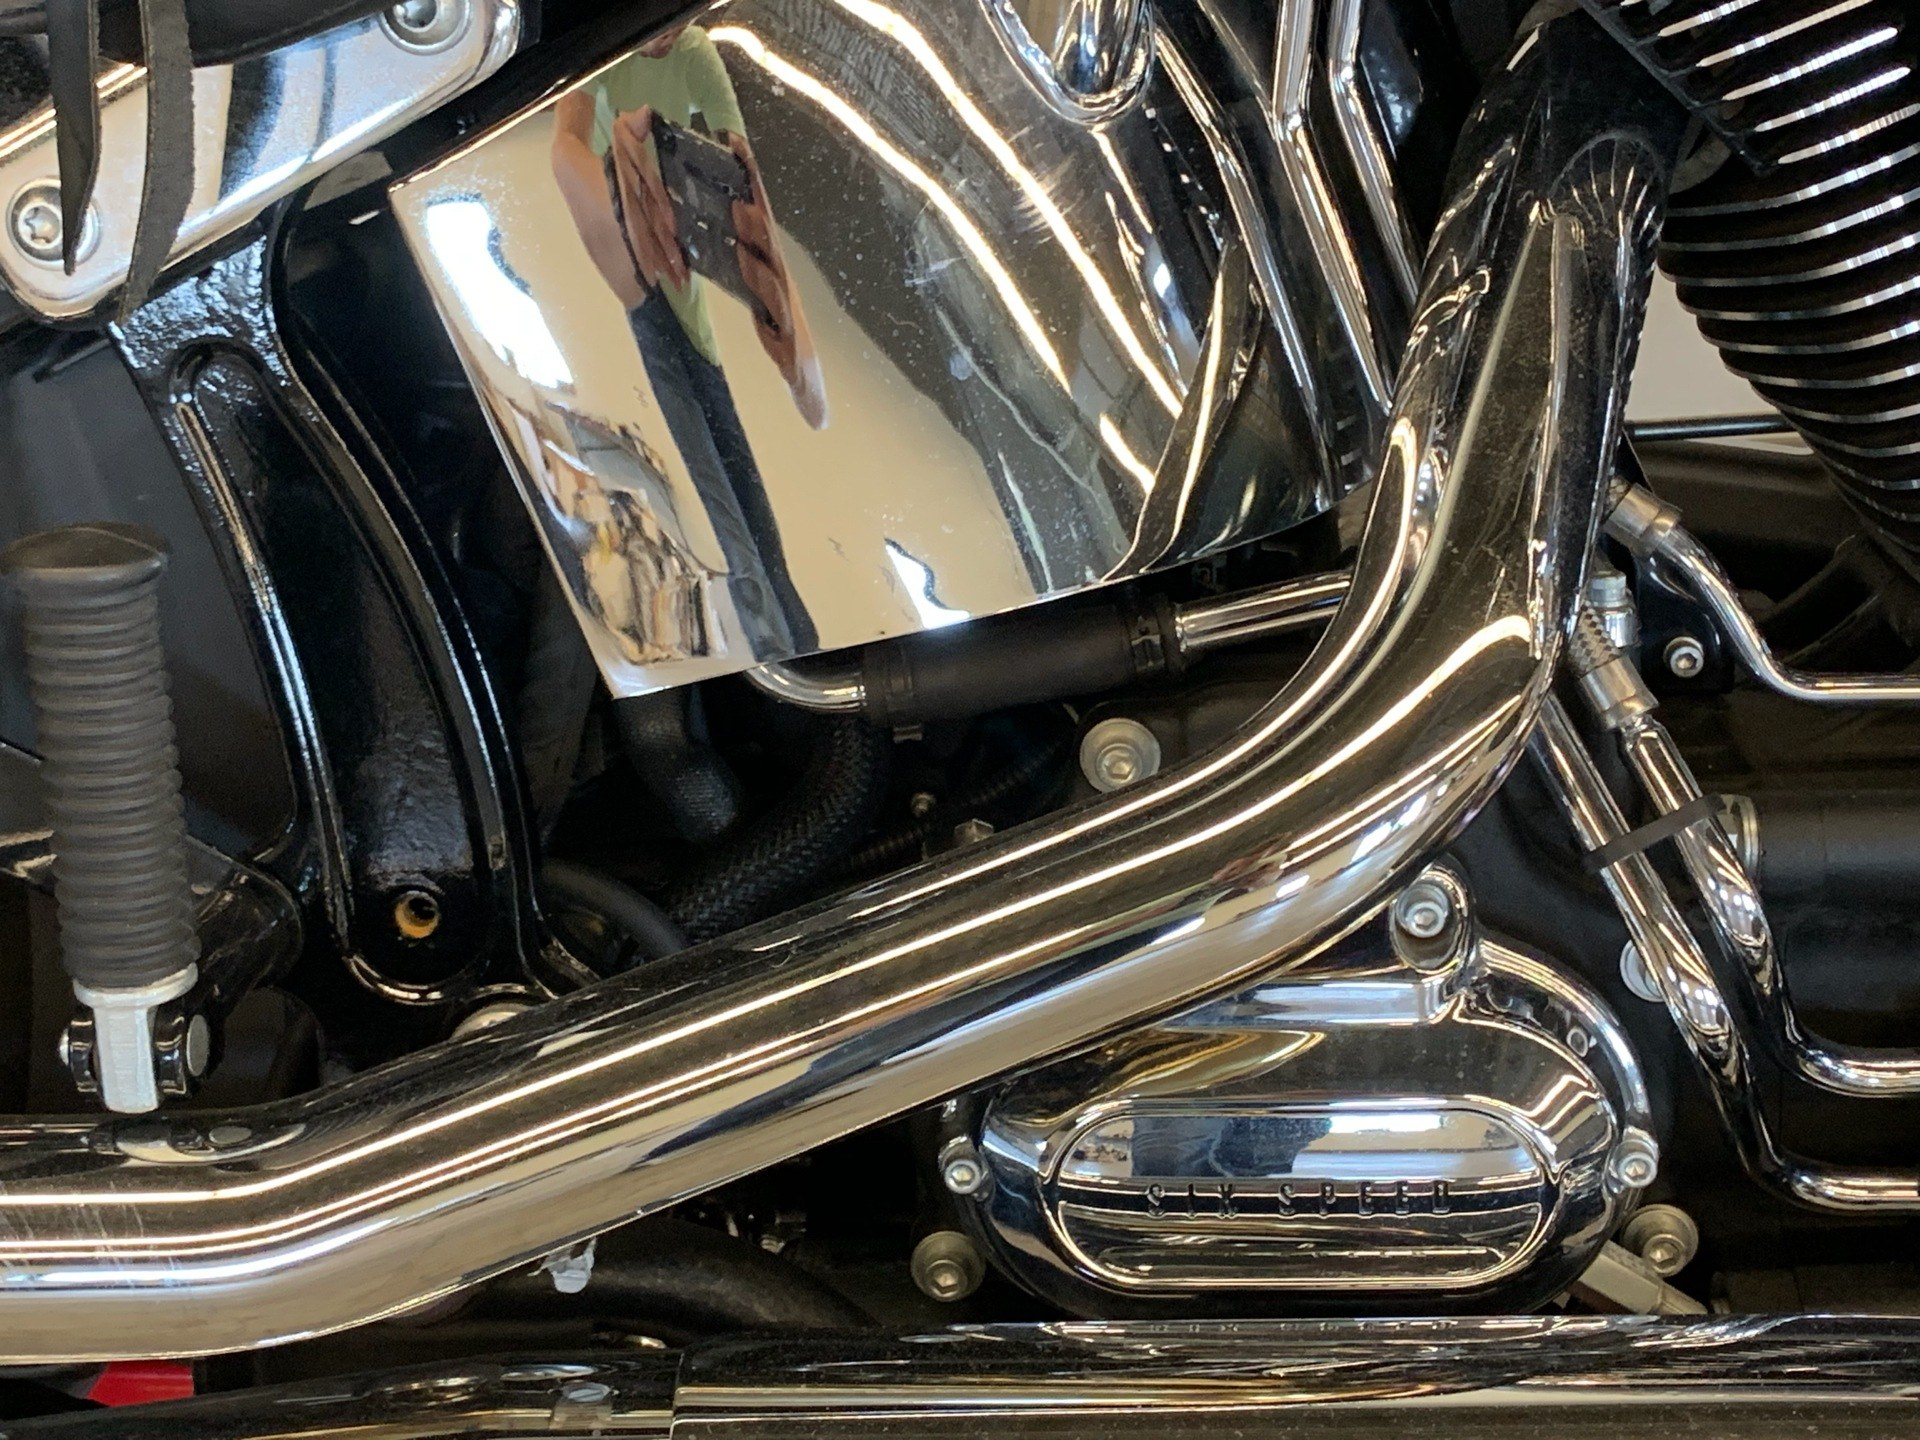 2016 Harley-Davidson Heritage Softail® Classic in Flint, Michigan - Photo 9